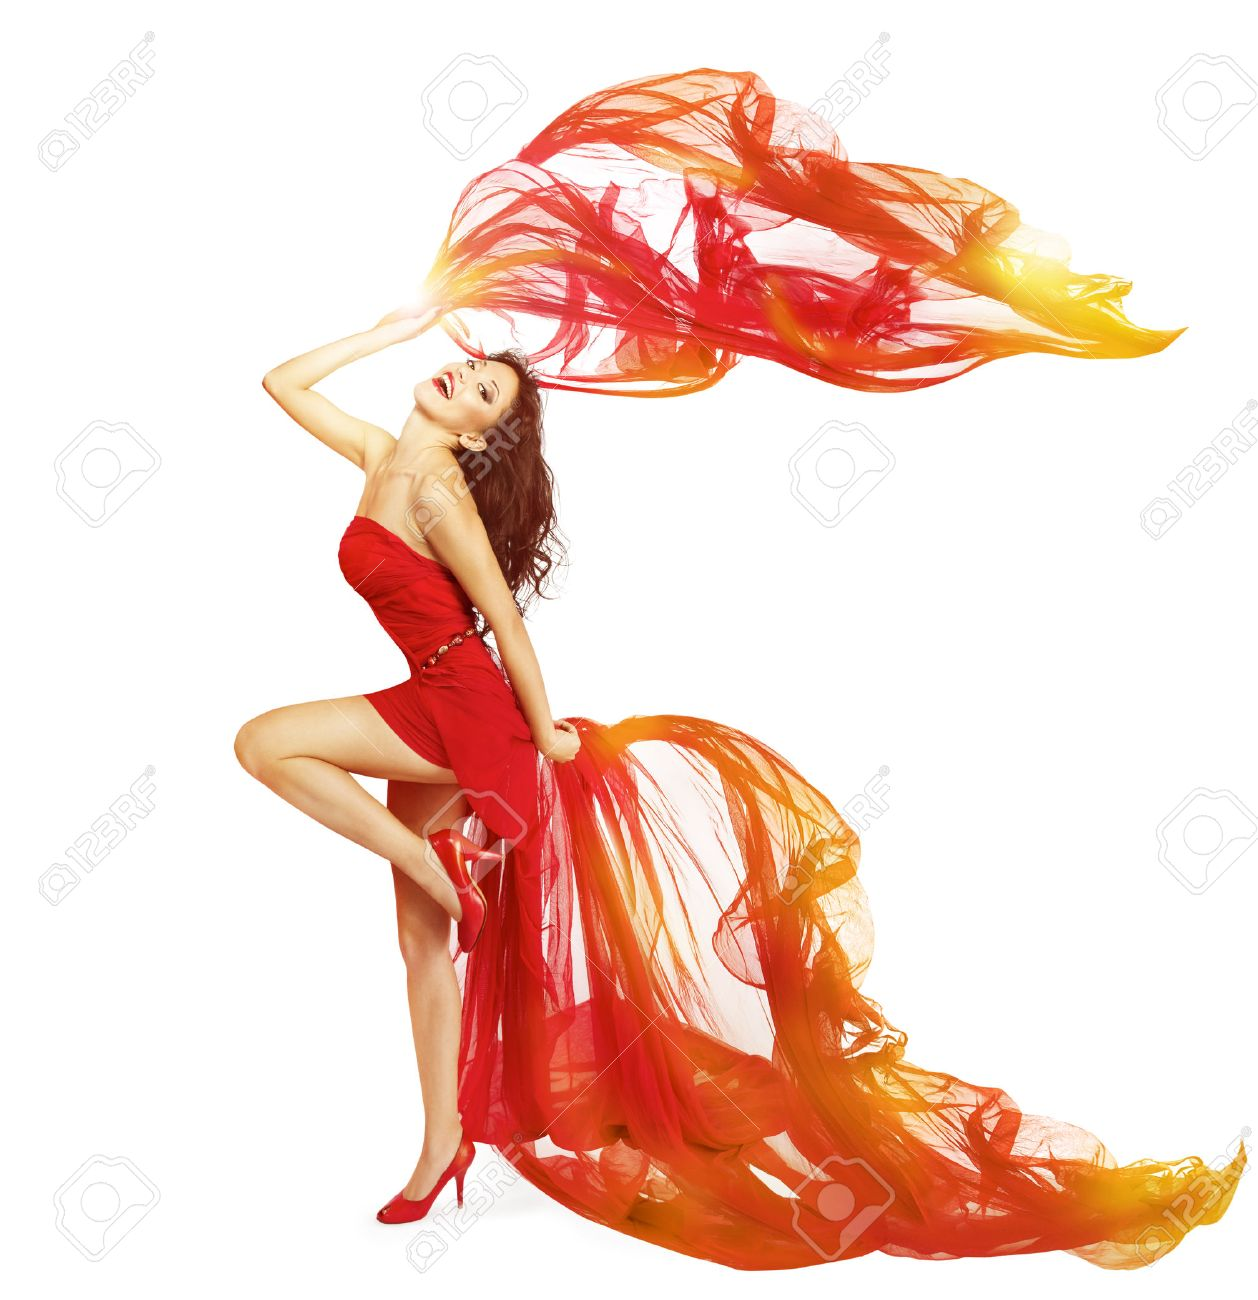 07089c4d3ff7 Stock Photo - Woman Dancing in Red Dress, Cloth Flying Waving on Wind, Dance  Girl Isolated Over White Background